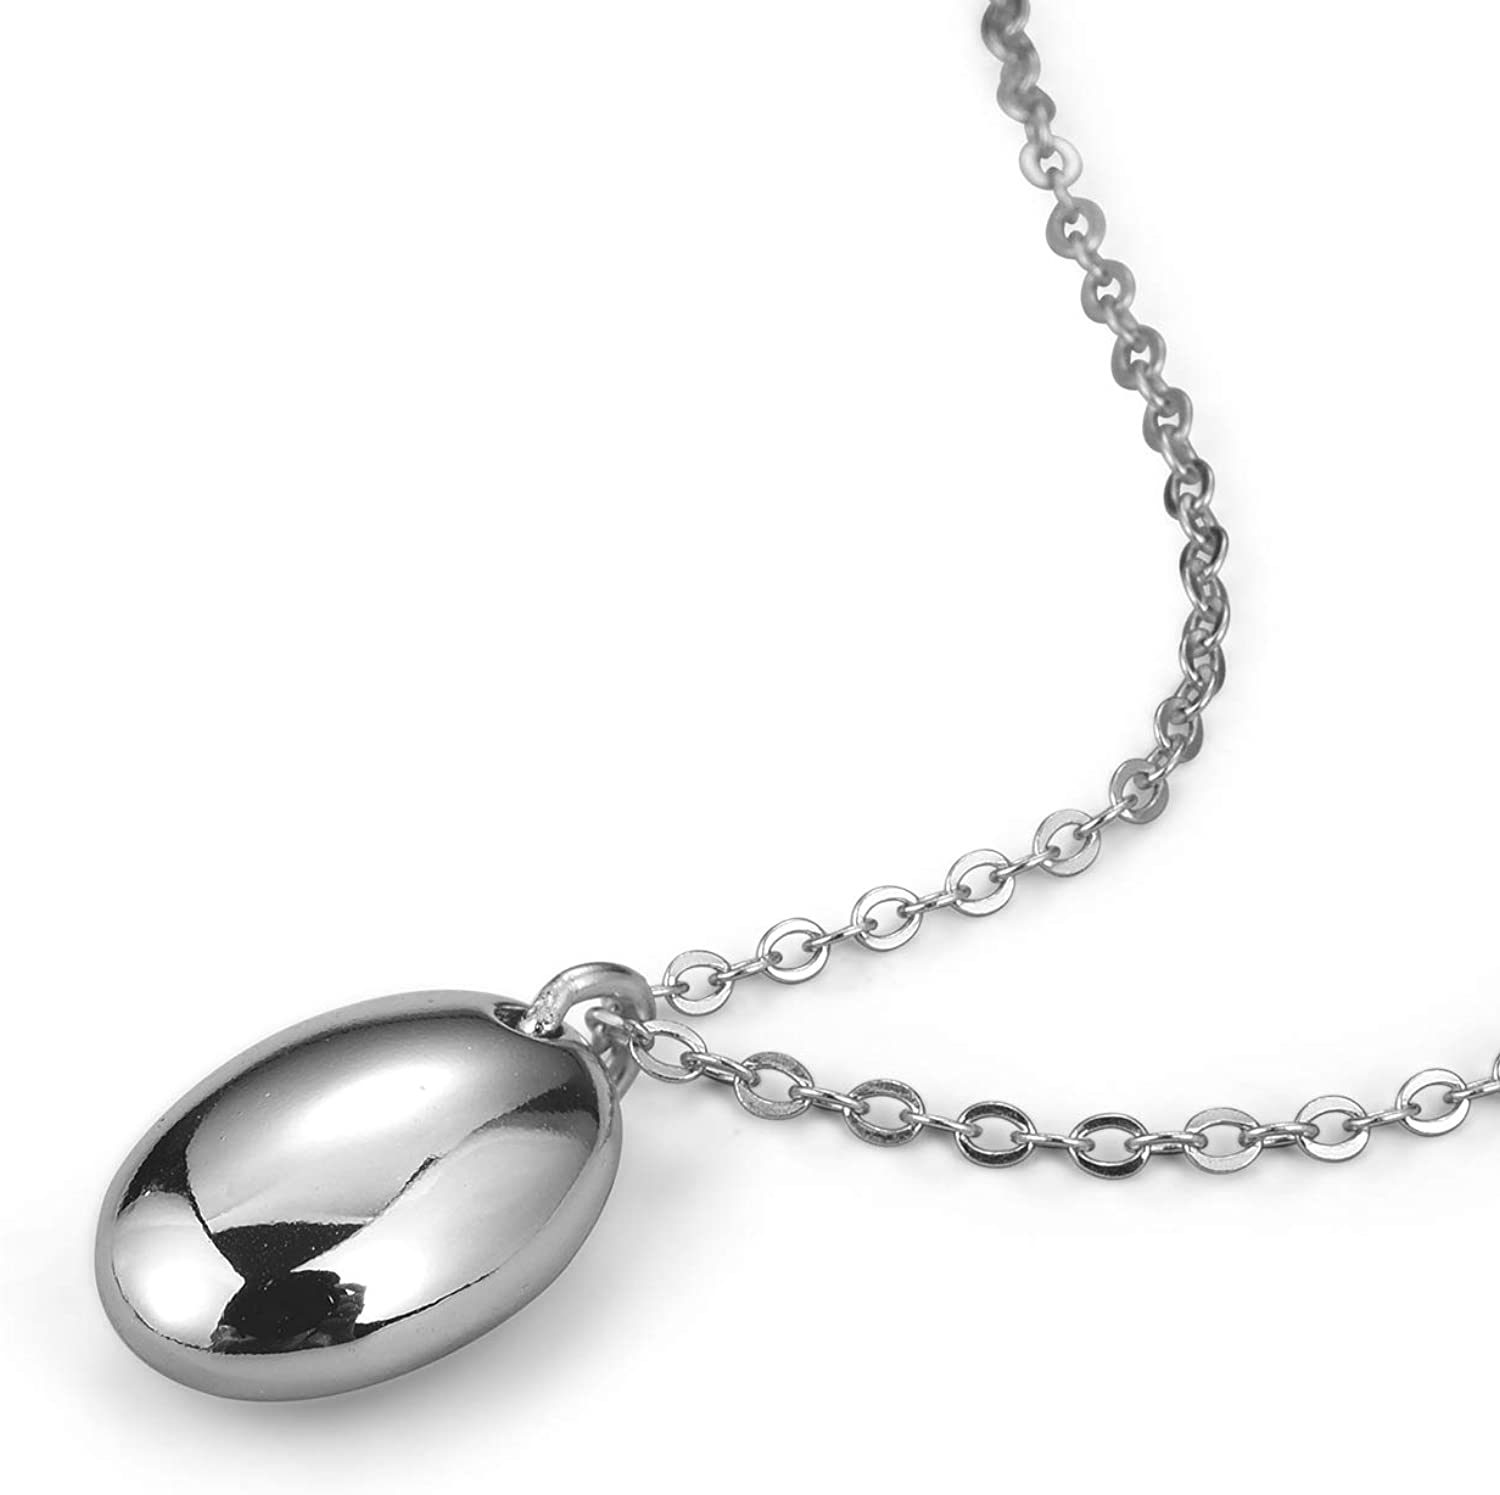 Lotus Fun S925 Sterling Silver Necklace Pendant Minimalist Geometric Glossy Oval Pendant with Necklaces Link Chain Length 42.5cm+7.5cm Jewelry for Women and Girls